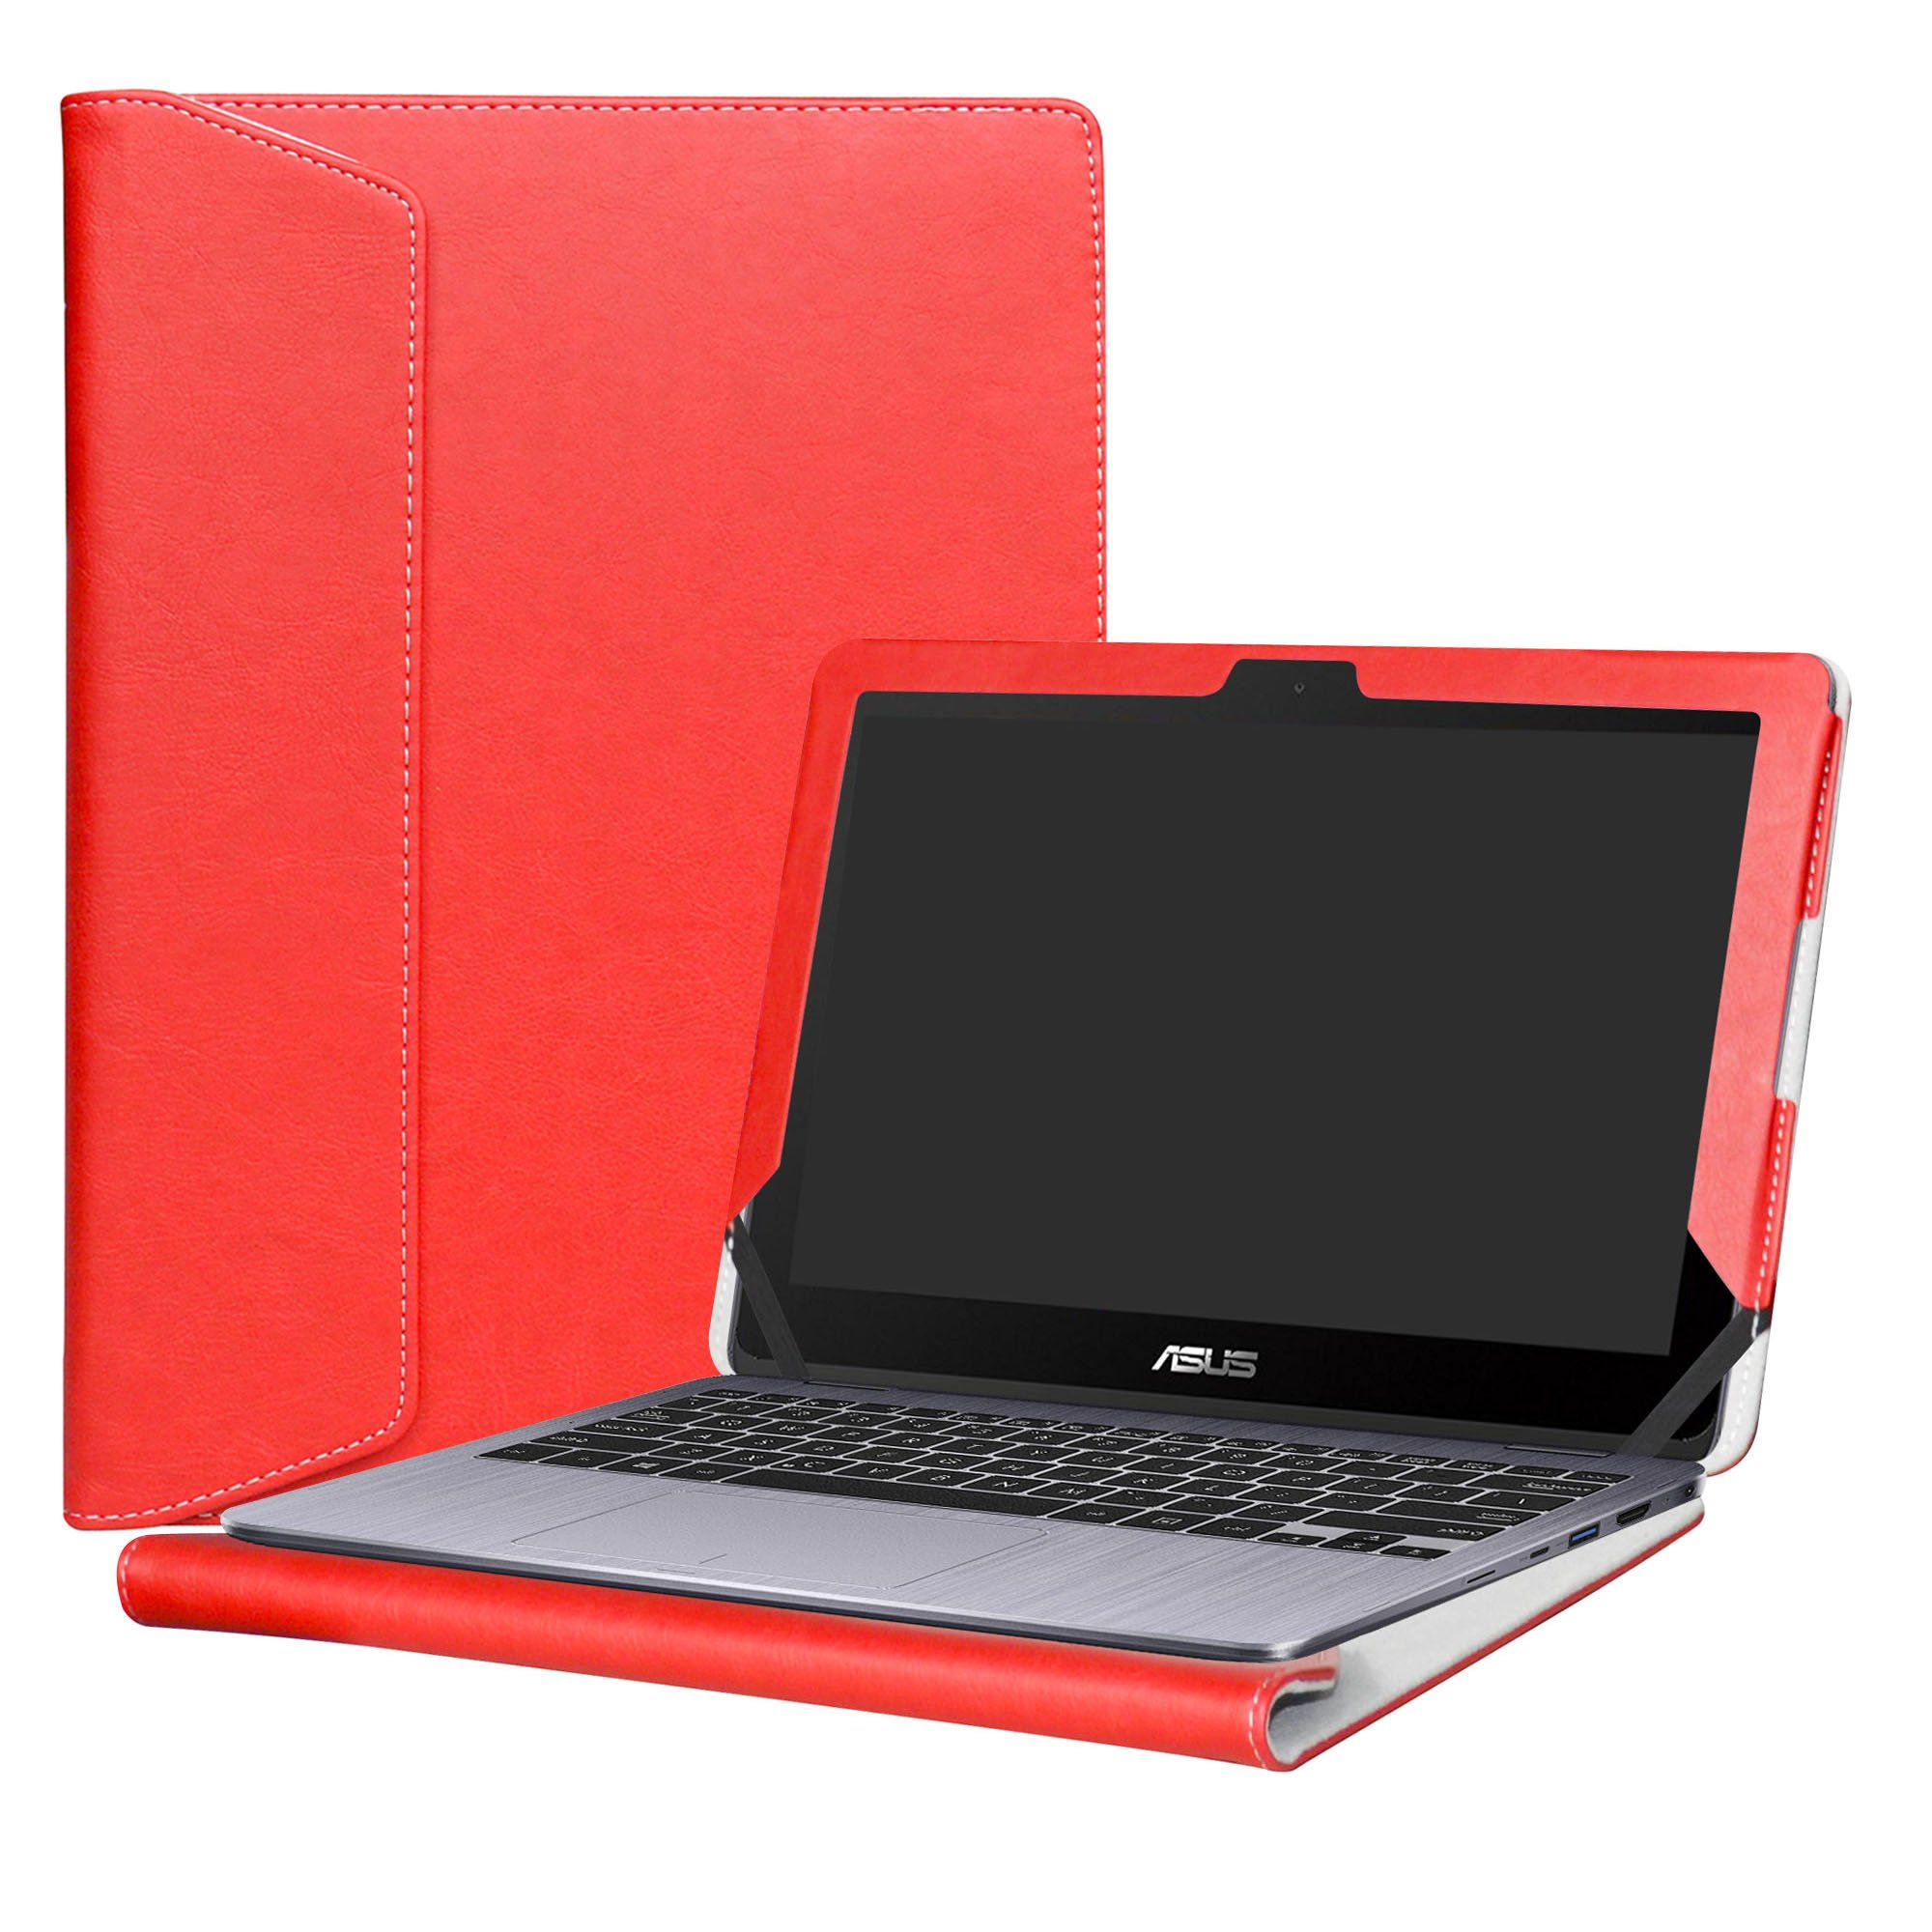 Alapmk Protective Case Cover For 11.6'' ASUS VivoBook Flip 12 TP203NA tp203na-uh01t Series Laptop(Warning:Only fit model TP203NA),Red by Alapmk (Image #1)